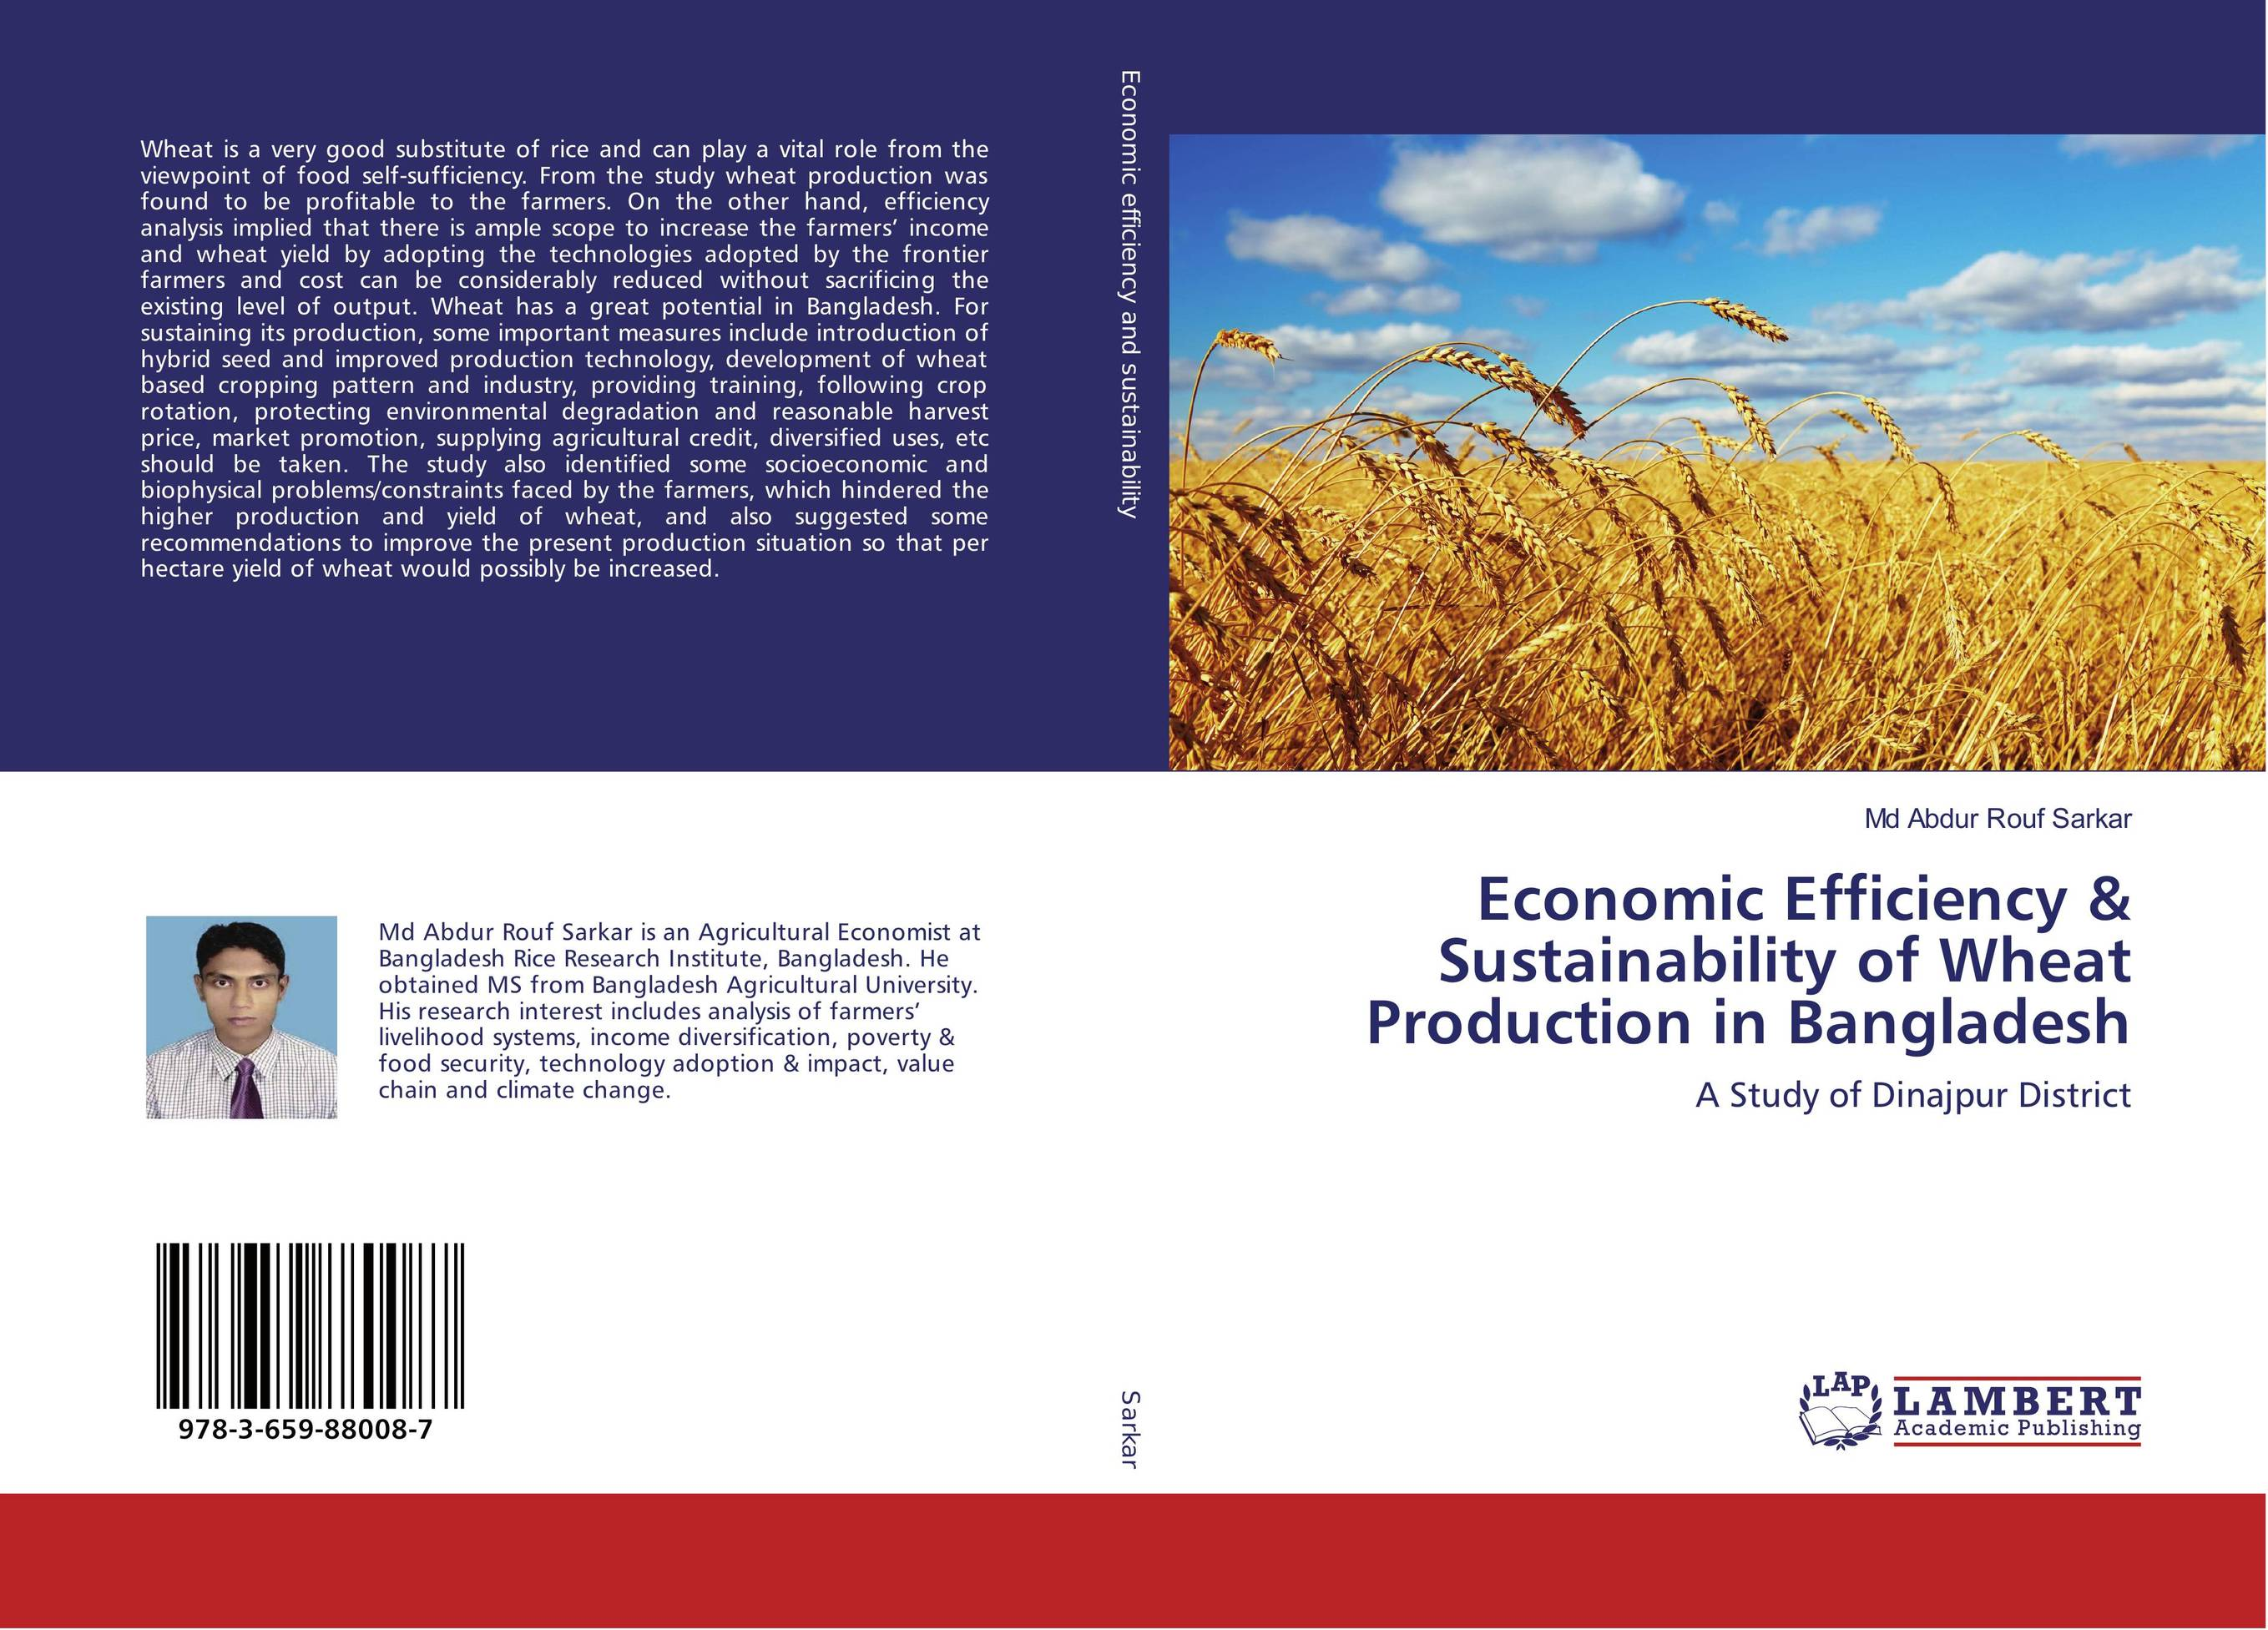 Economic Efficiency & Sustainability of Wheat Production in Bangladesh land tenure and efficiency in boro rice production in bangladesh